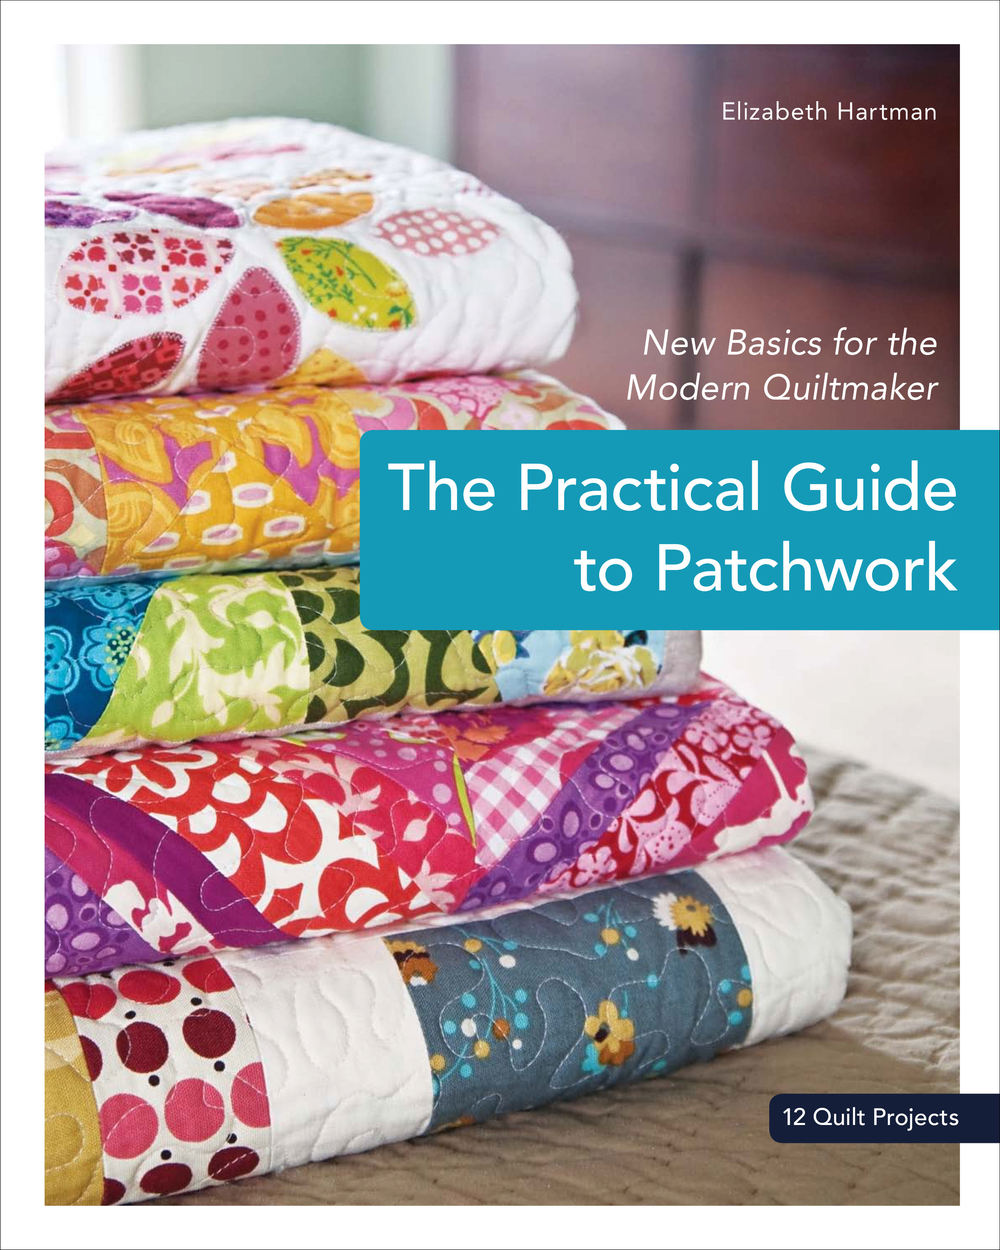 The Practical Guide to Patchwork by Elizabeth Hartman (2010) ohfransson.com